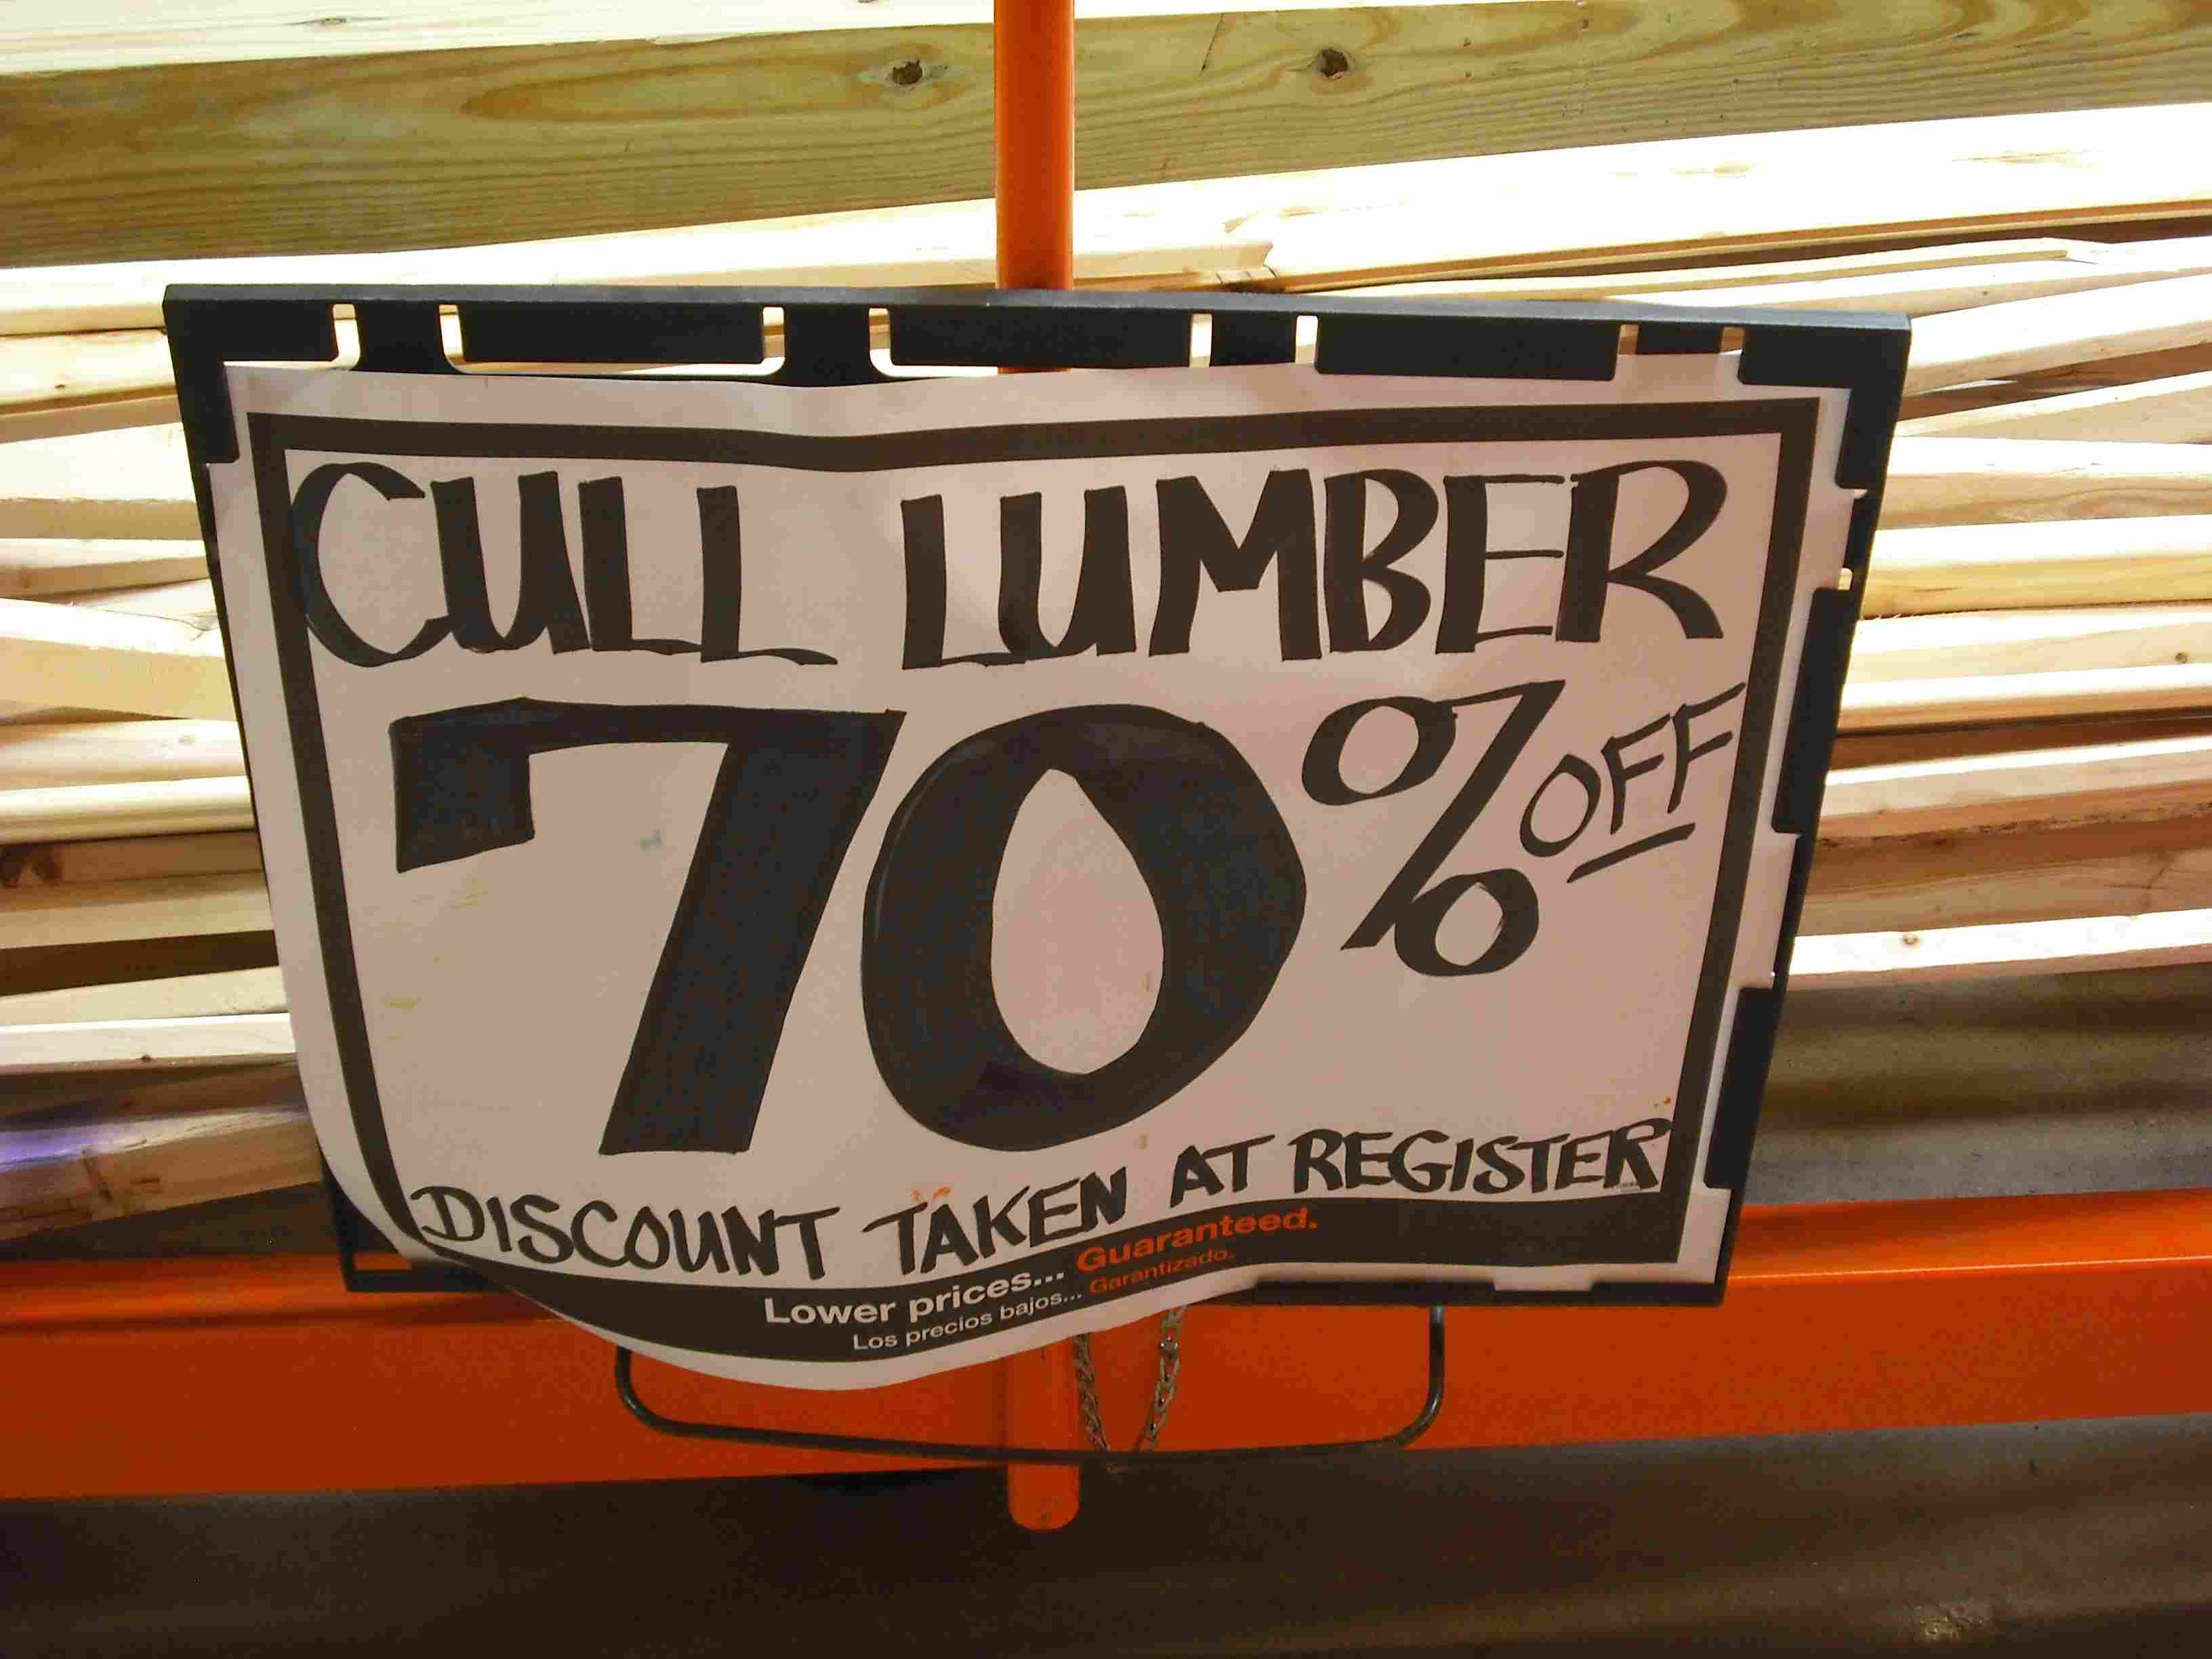 What You Need to Know About Cull Lumber